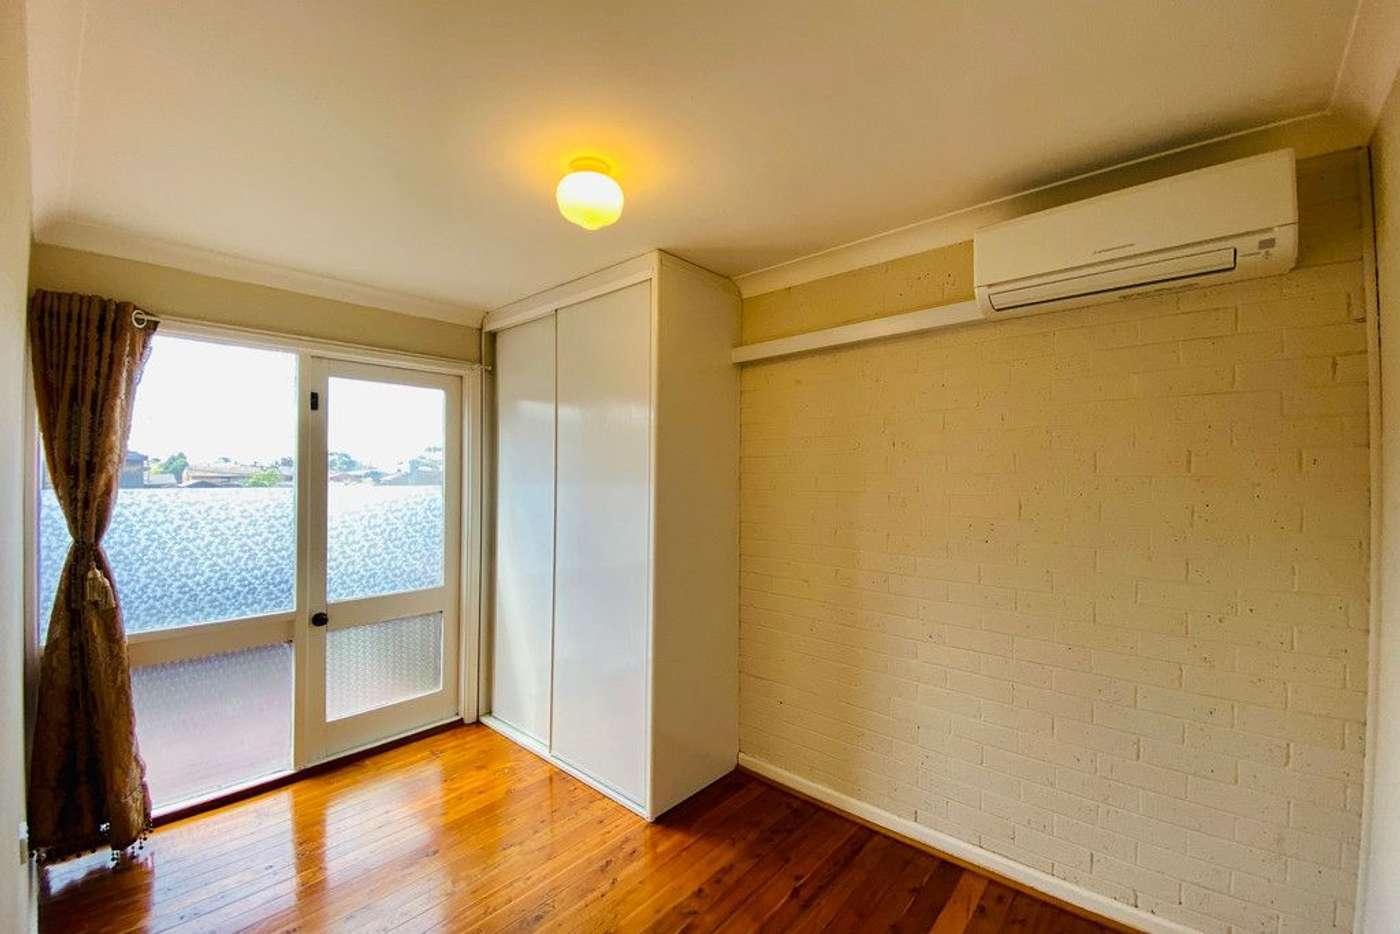 Seventh view of Homely townhouse listing, 11/15 Werona Avenue, Padstow NSW 2211